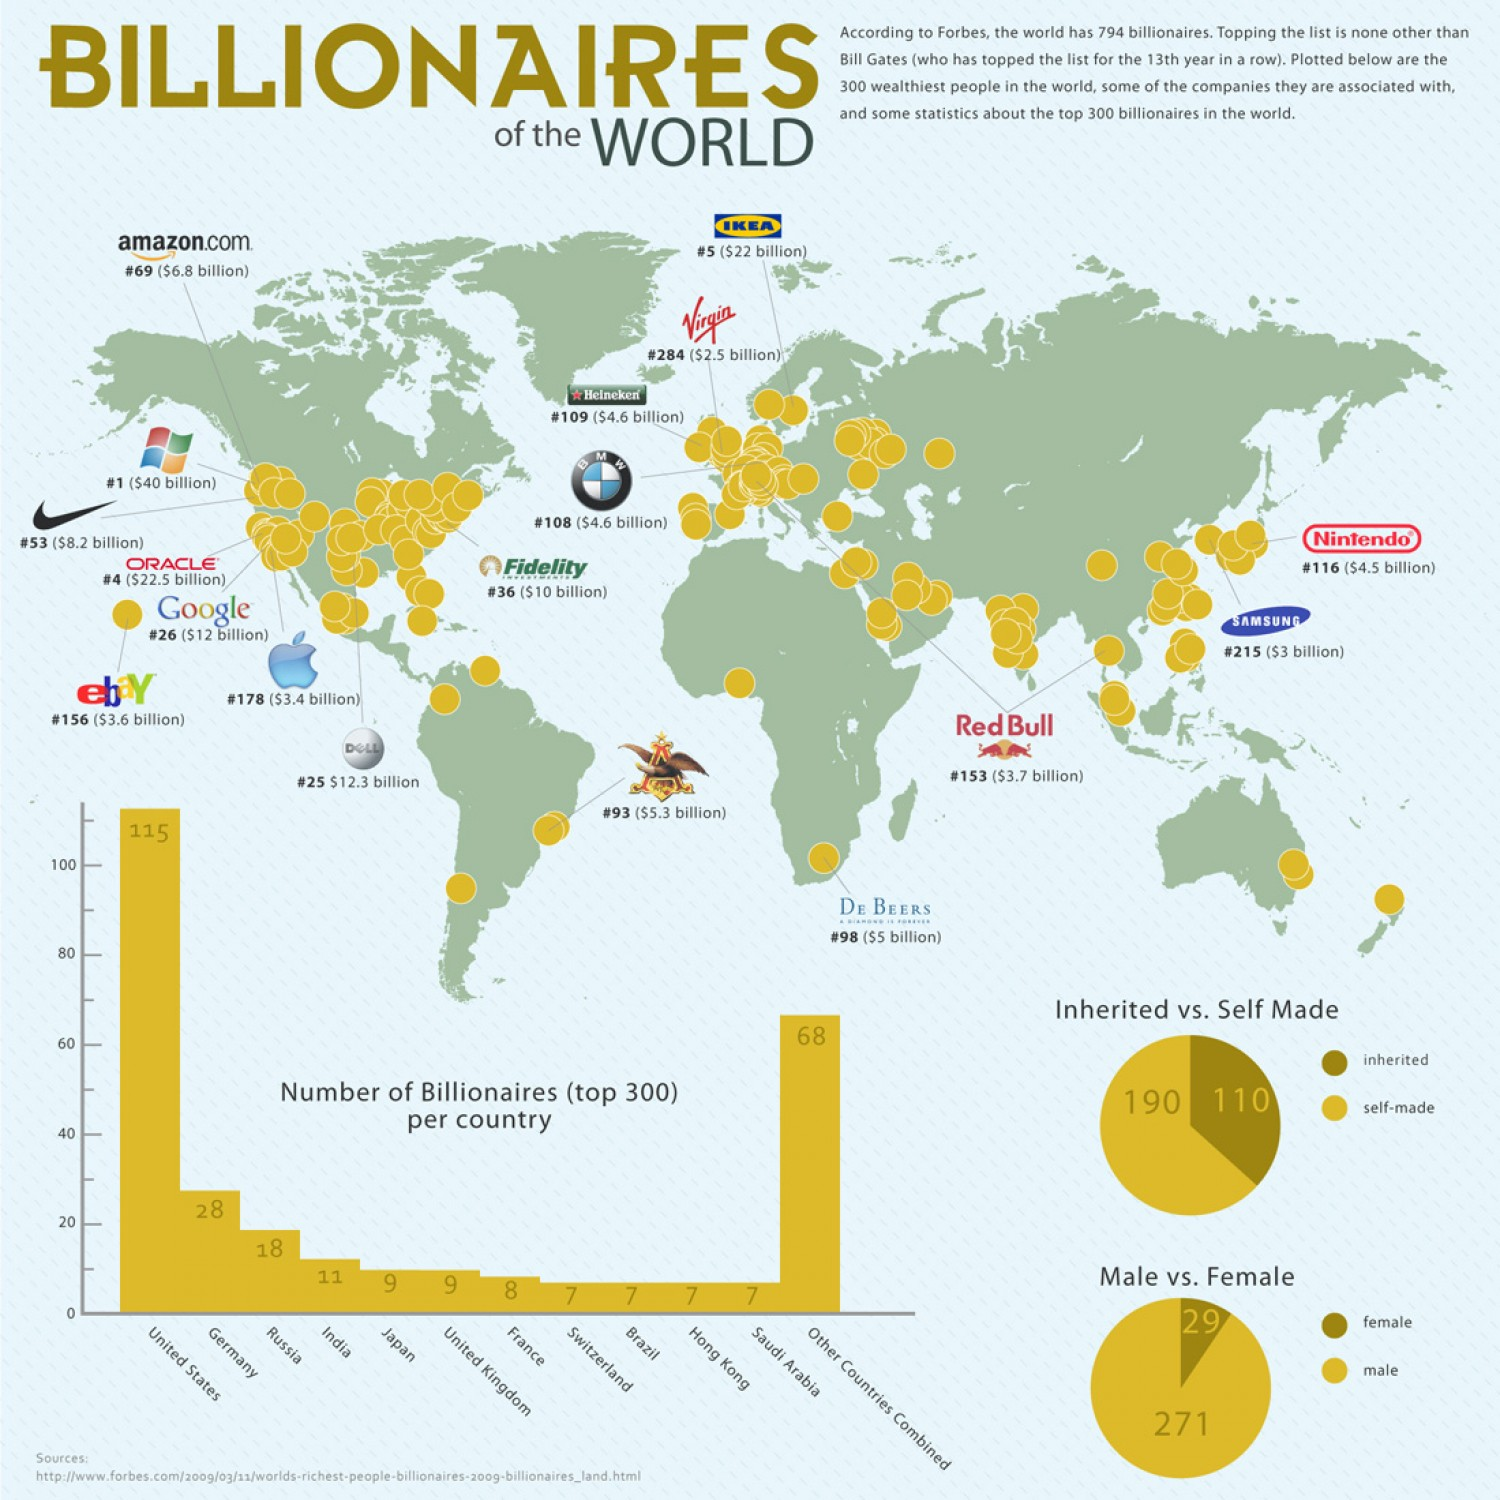 20. Billionaires of the World